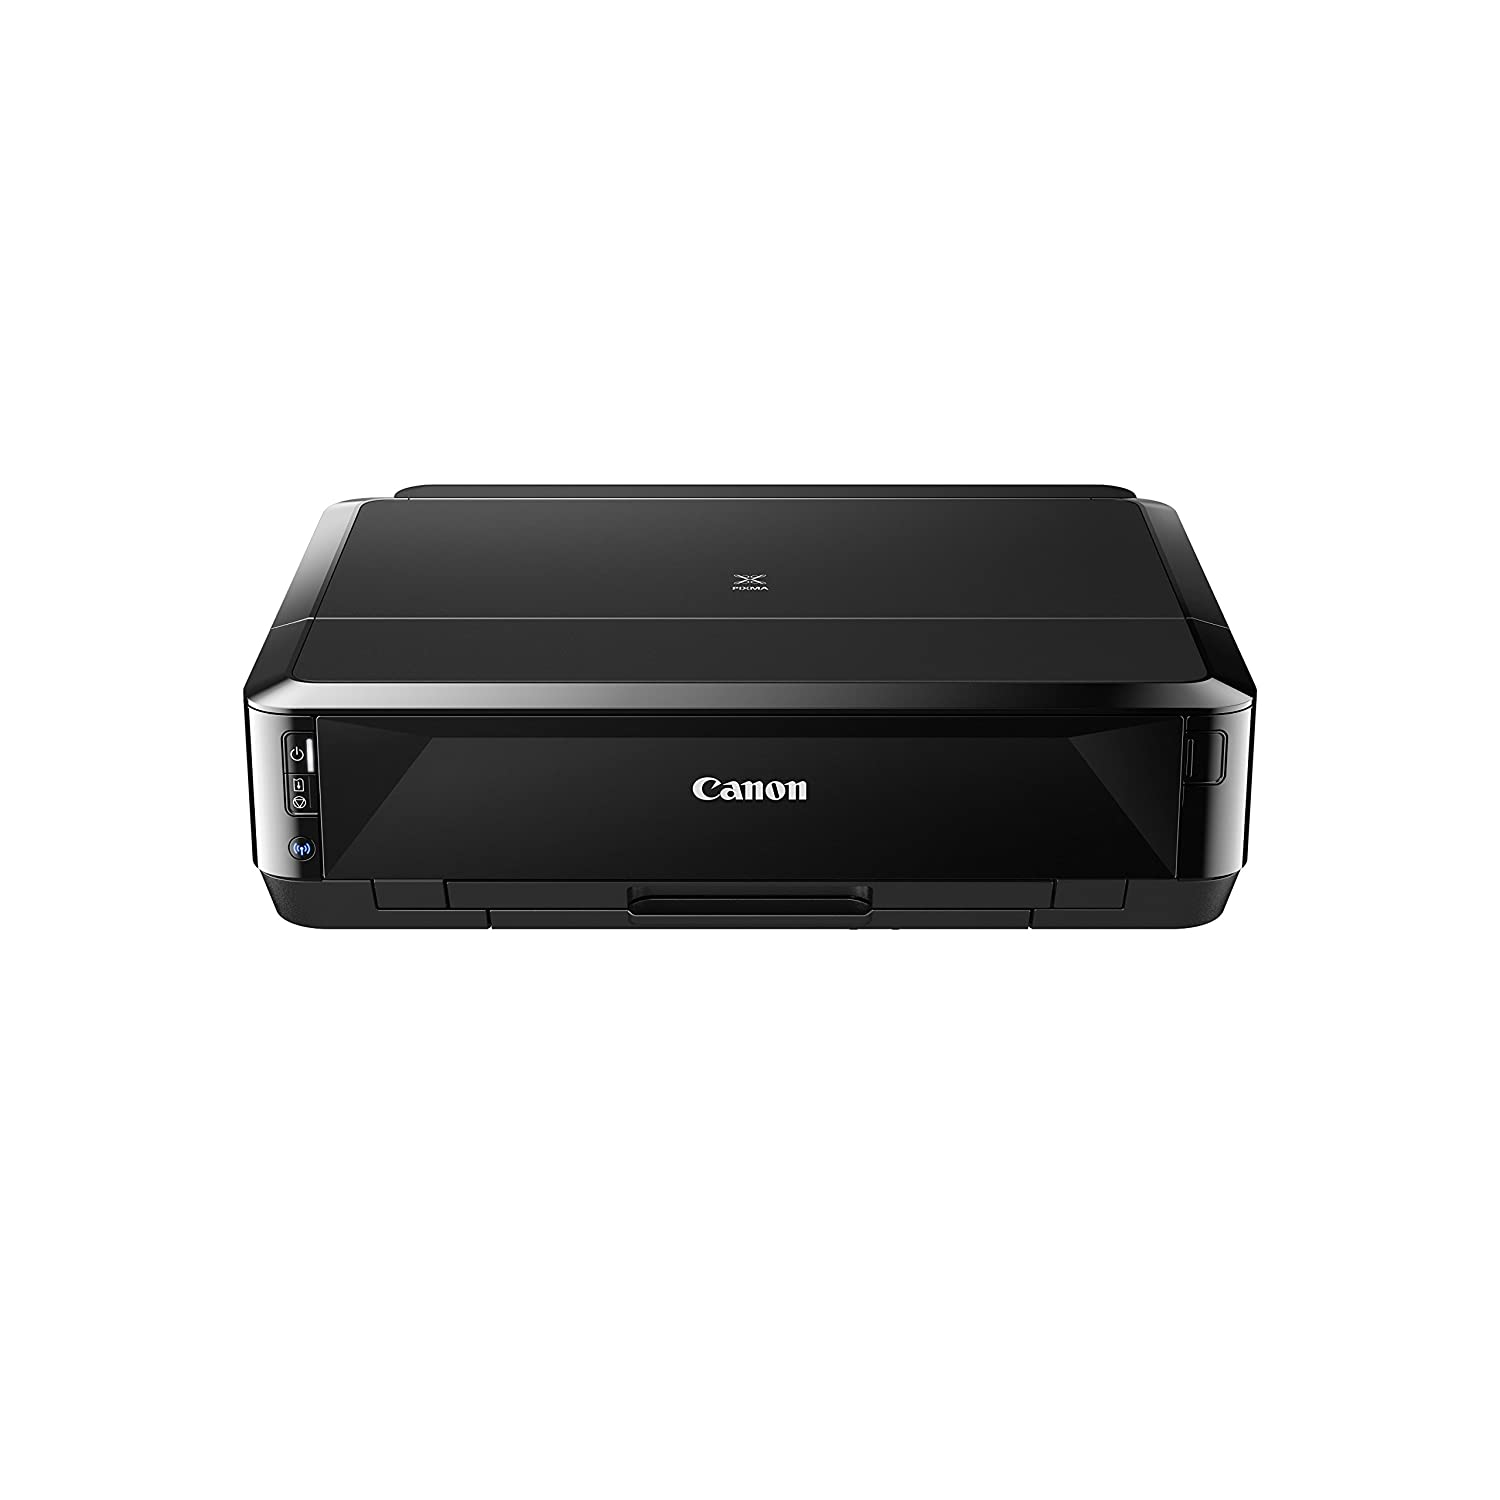 Canon Impresora Pixma IP7250 Inyeccion Wifi: Canon: Amazon.es ...